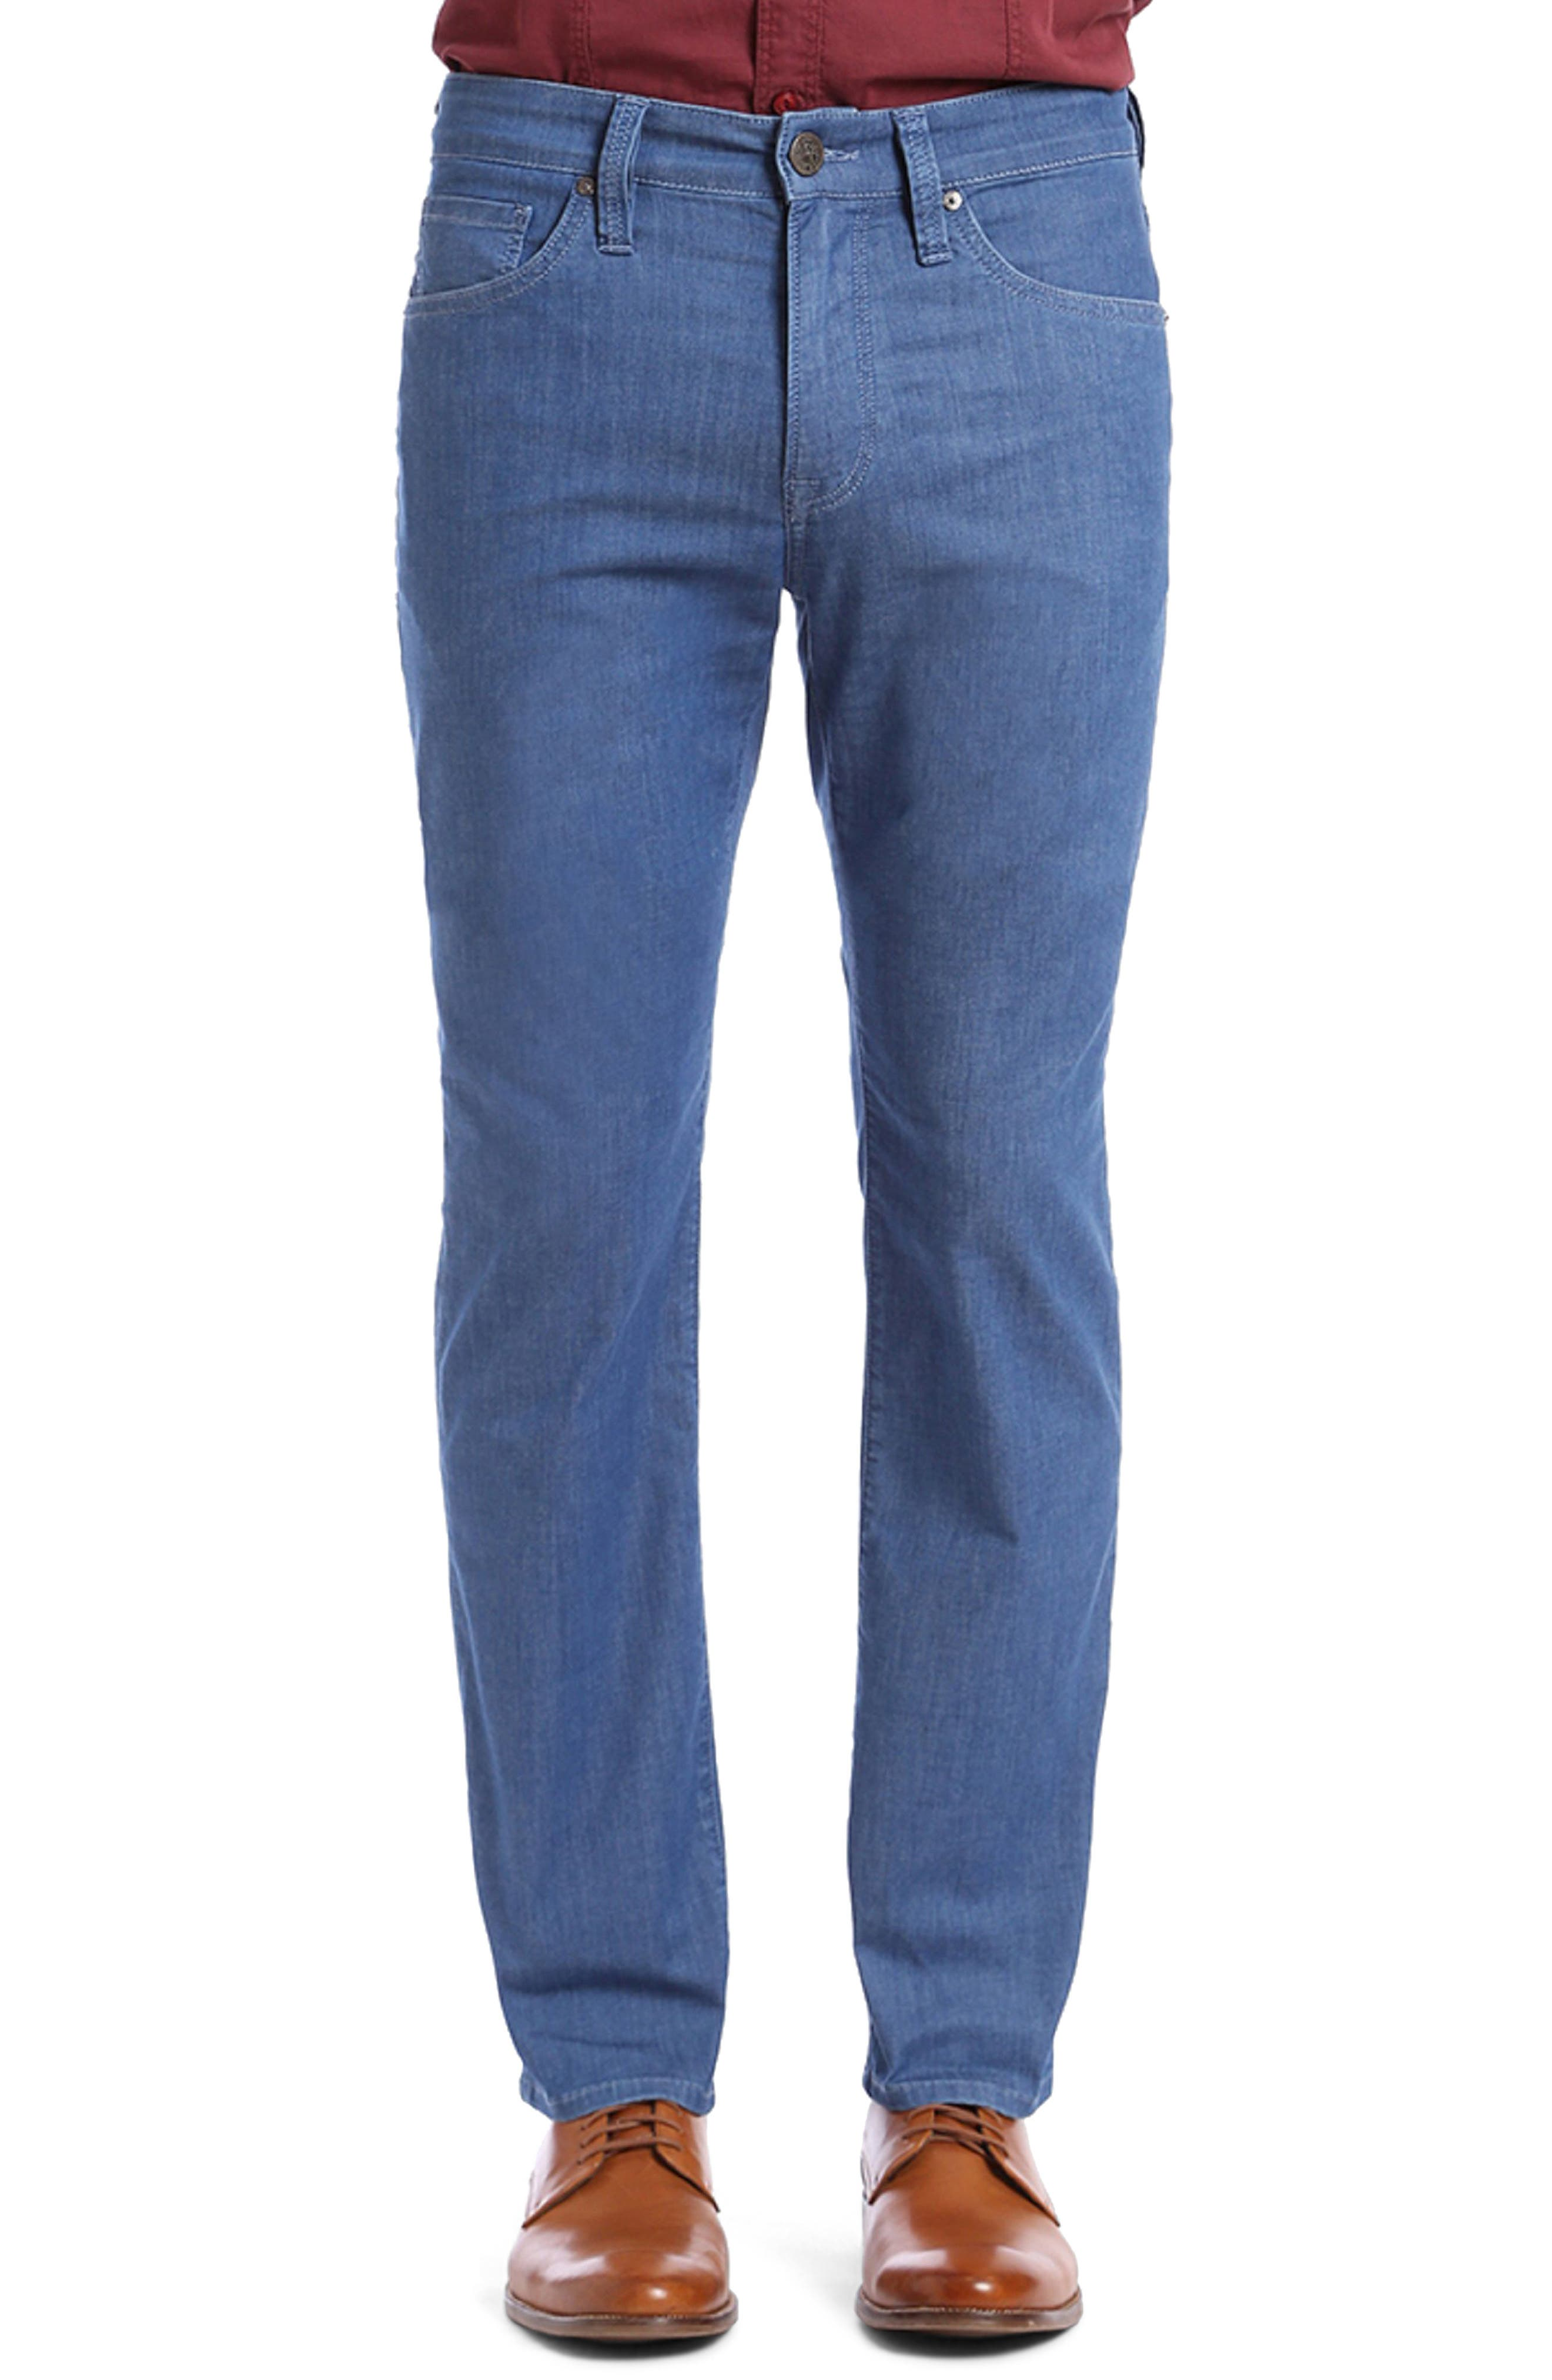 Courage Straight Fit Jeans,                             Main thumbnail 1, color,                             MID MAUI DENIM